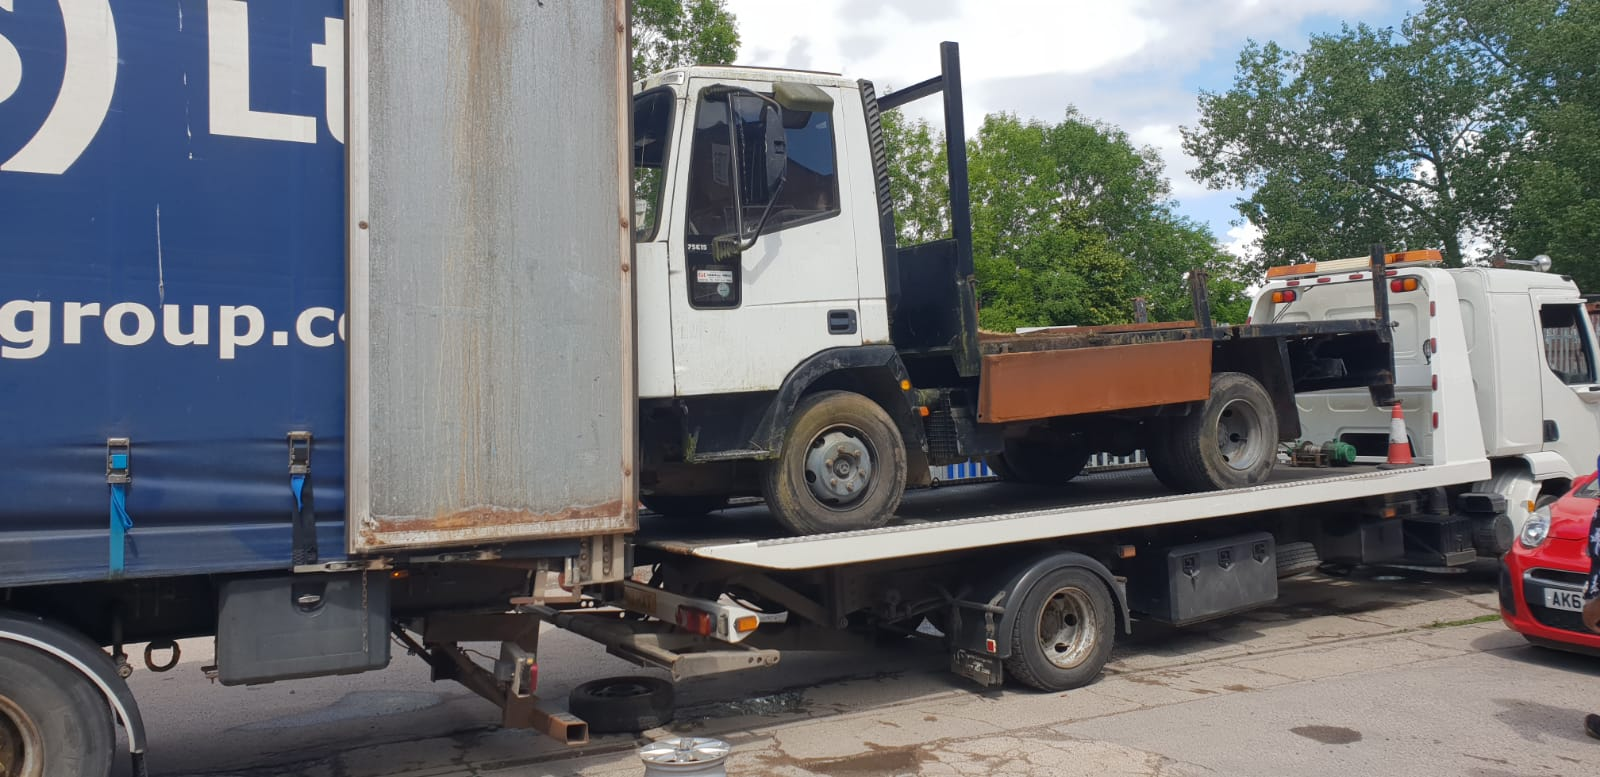 Moving commercial vehicles